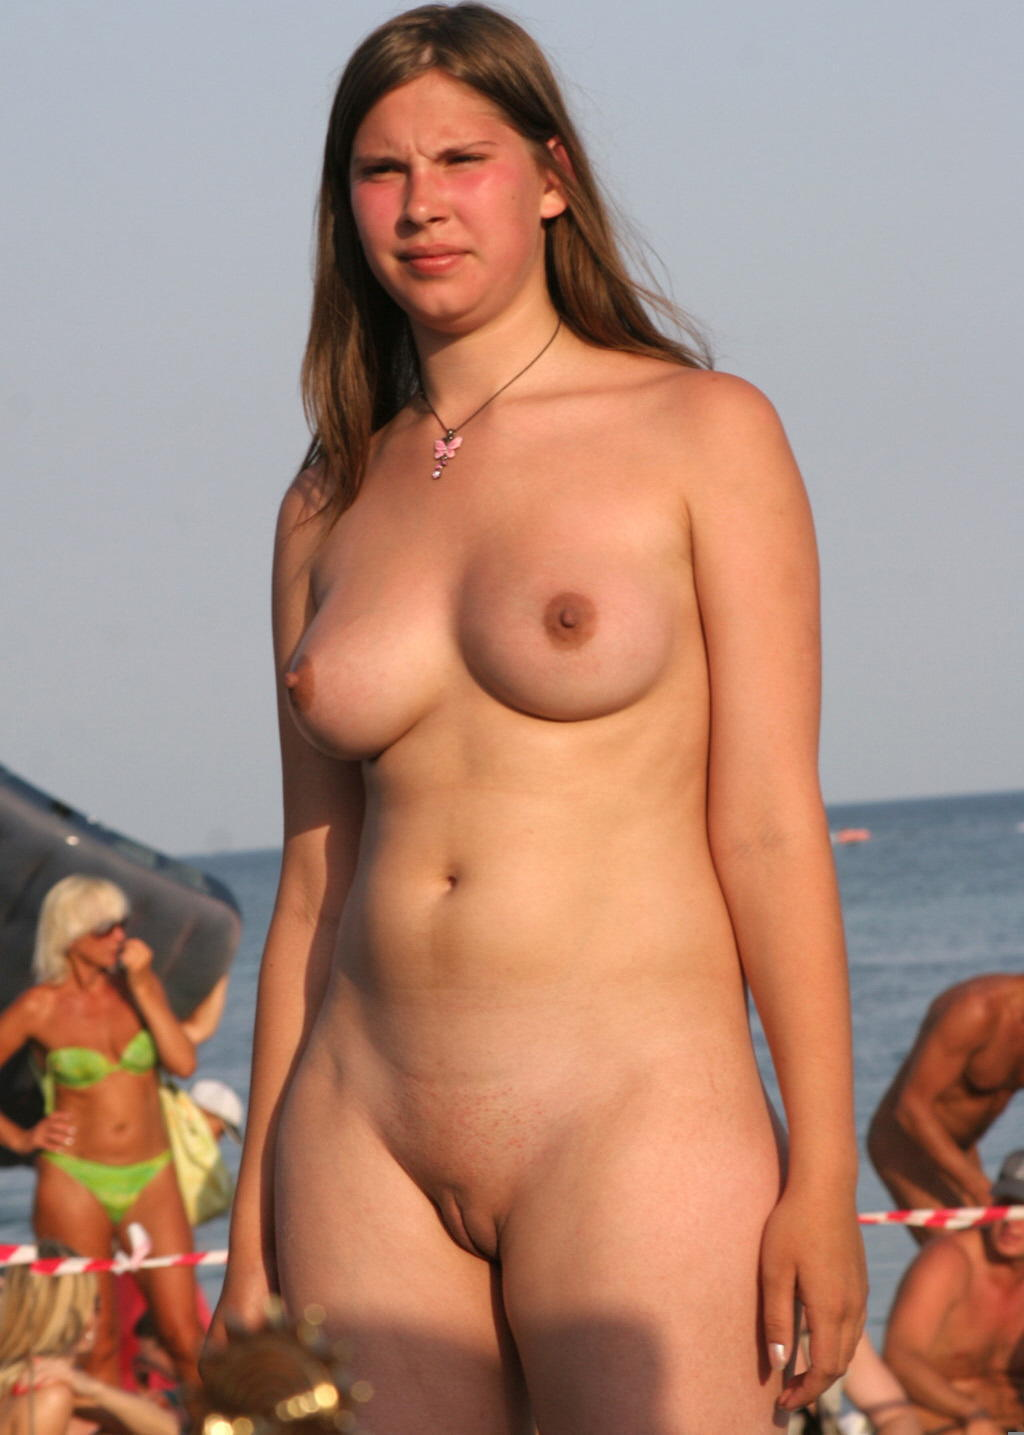 Naked camel toe women pictures tgp question